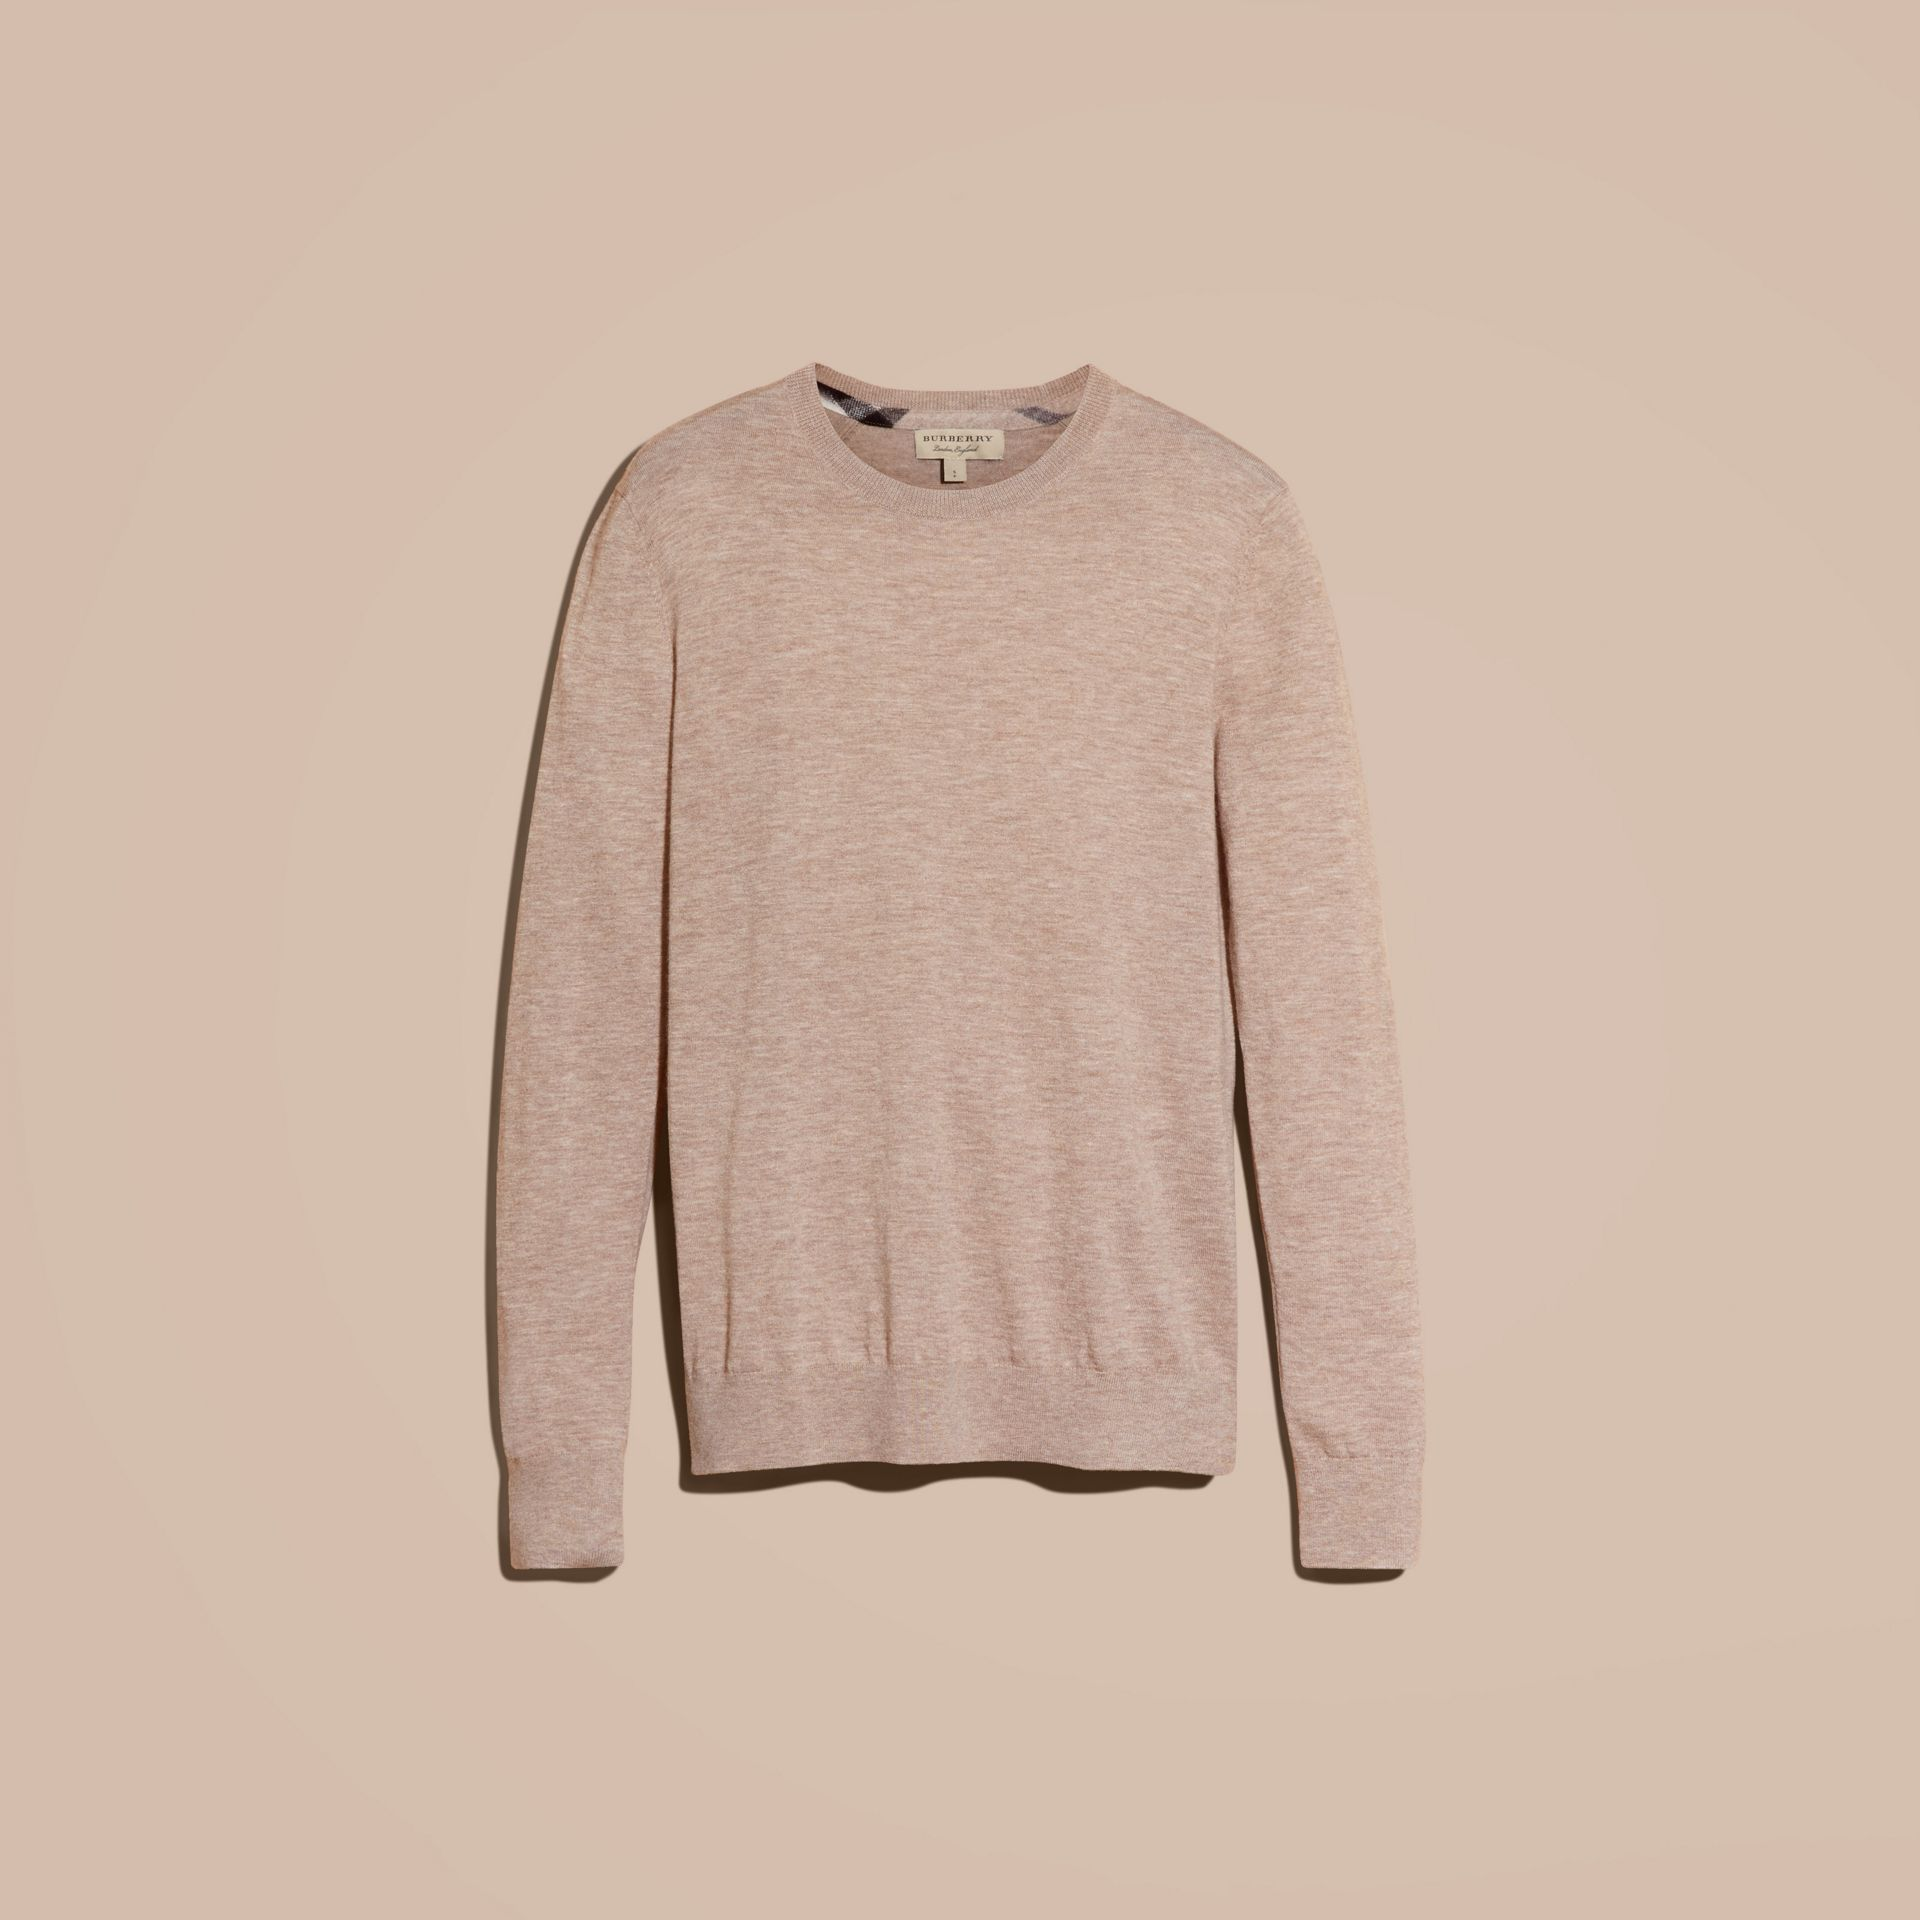 Lightweight Crew Neck Cashmere Sweater with Check Trim in Camel Melange - Men | Burberry - gallery image 4